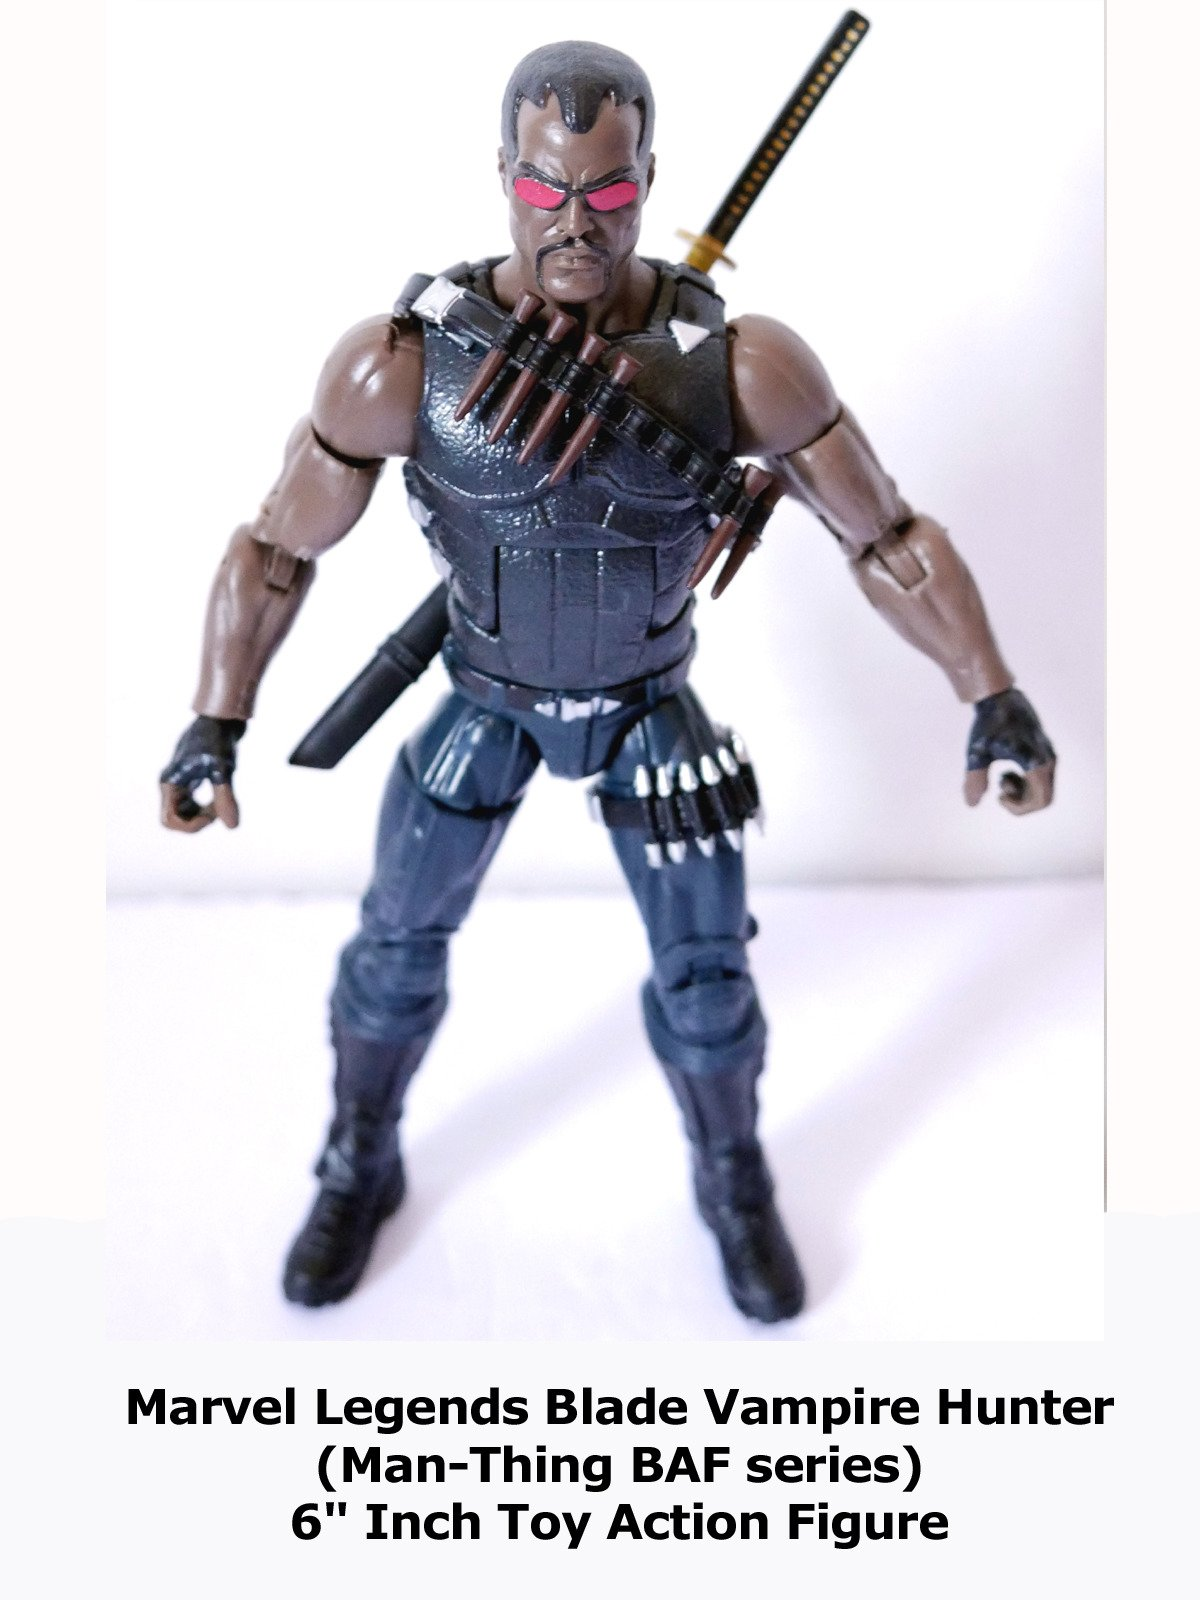 "Review: Marvel Legends Blade Vampire Hunter (Man-Thing BAF series) 6"" Inch Toy Action Figure"